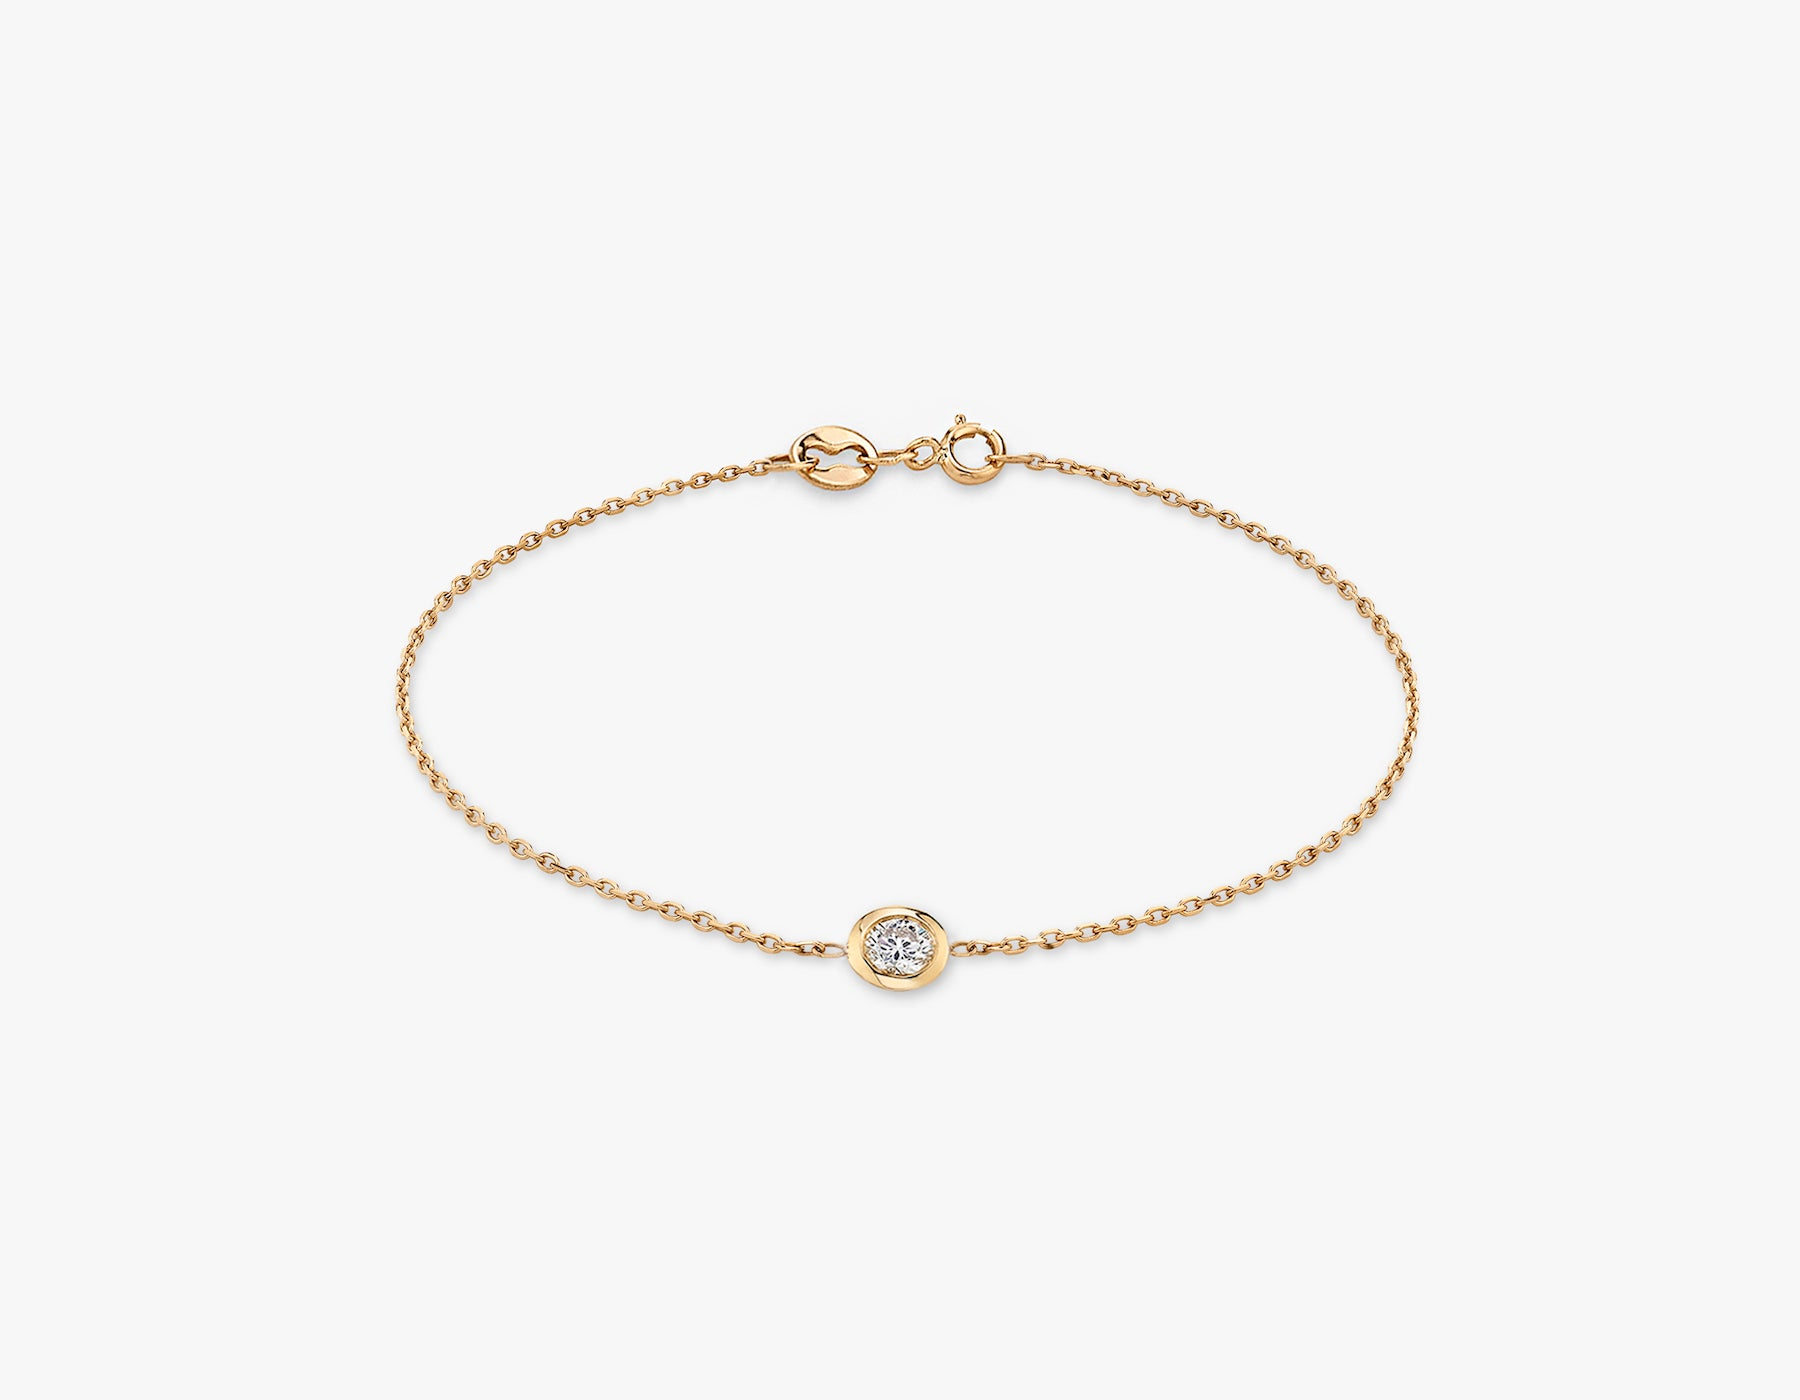 Vrai simple minimalist Round Diamond Bezel Bracelet, 14K Rose Gold